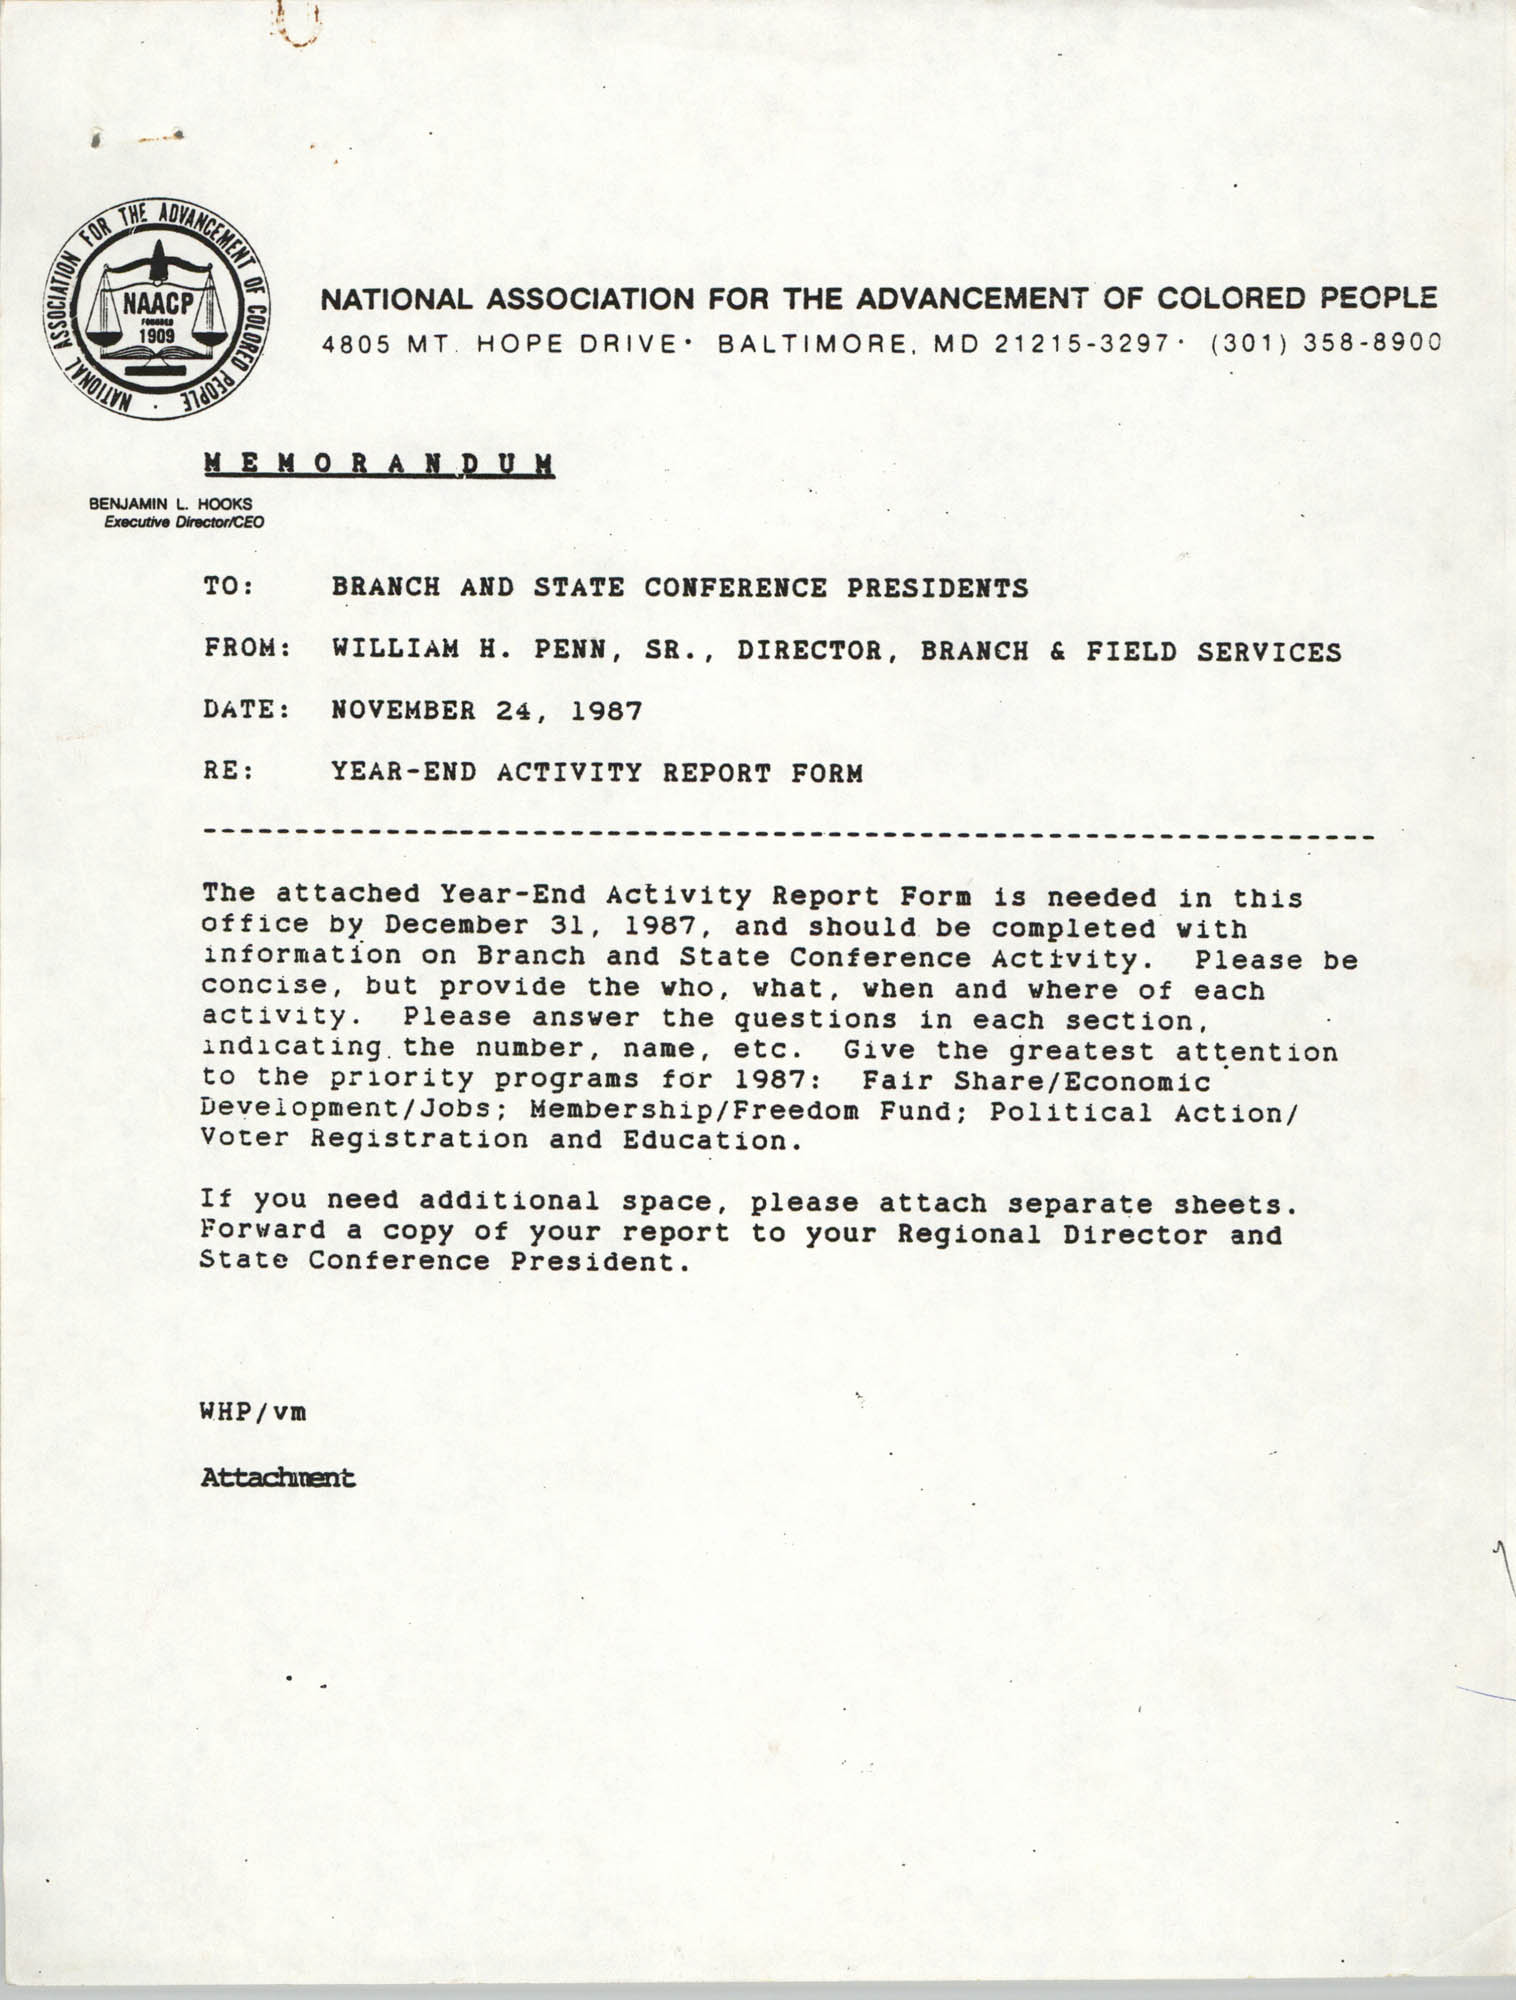 Memorandum from William H. Penn, Sr. to Branch and State Conference Presidents, November 24, 1987